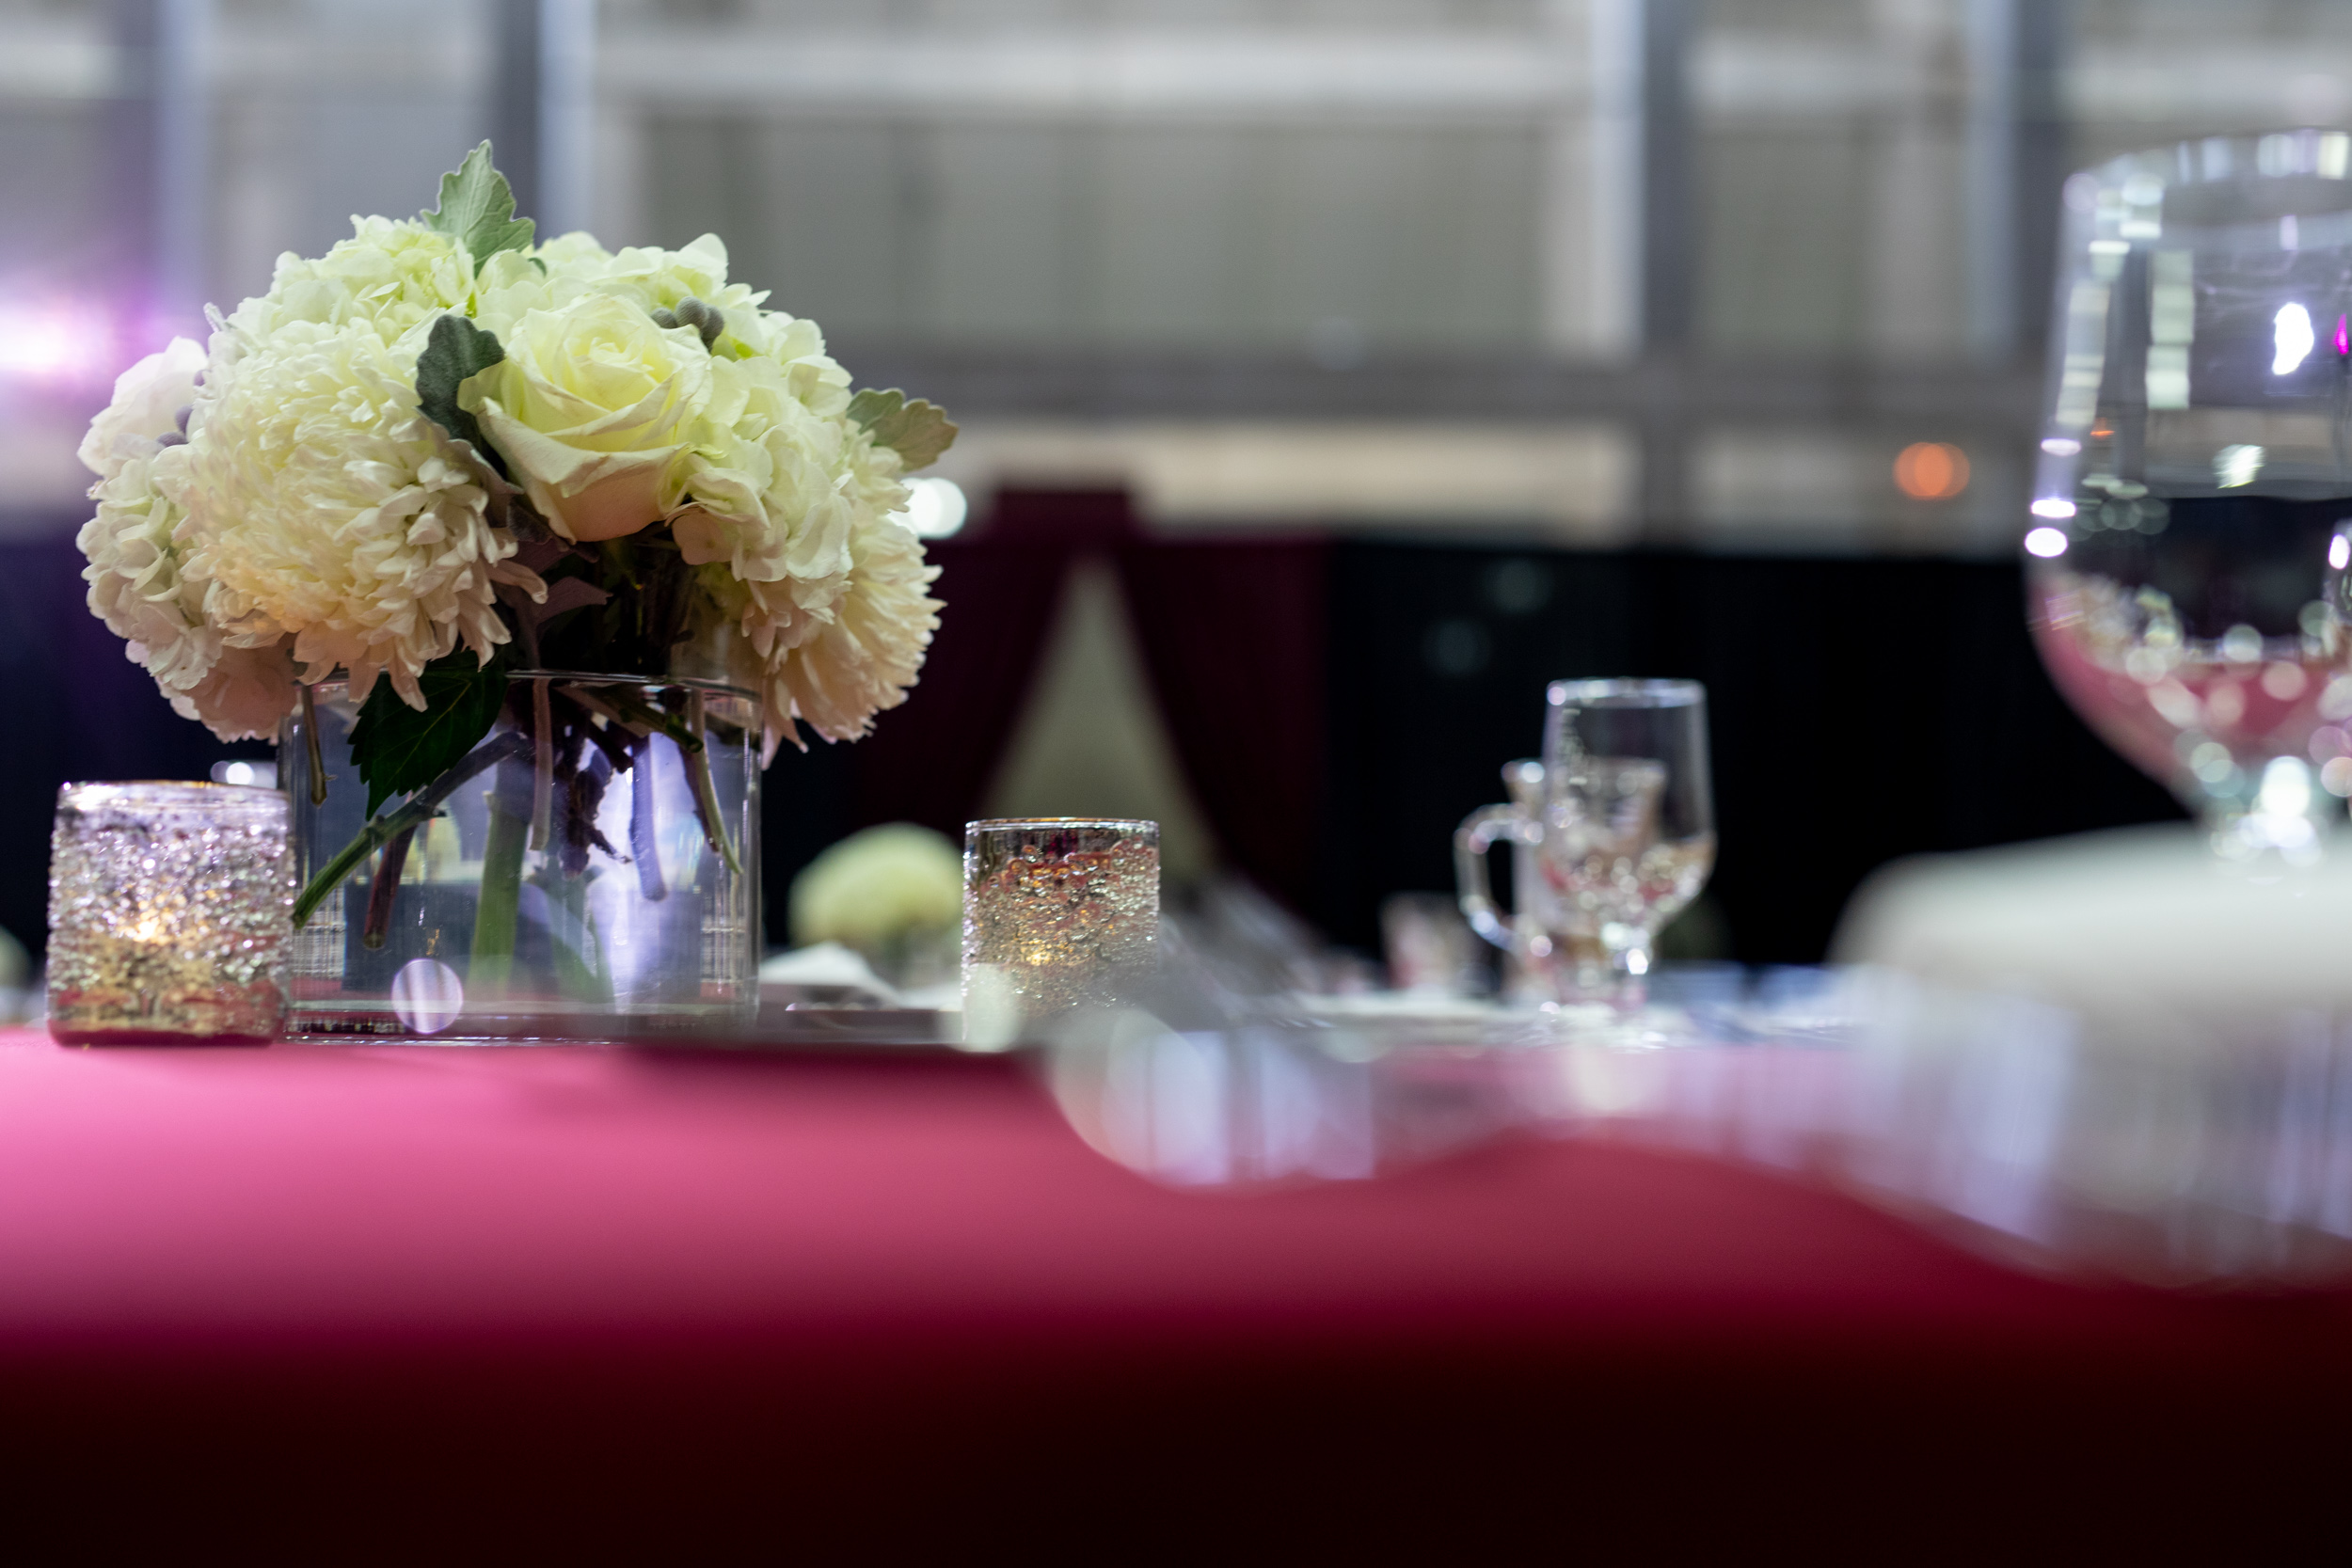 Corporate_Production_Phillips_Exeter_Academy_Pizzuti_Awards_Dinner_floral_center_piece